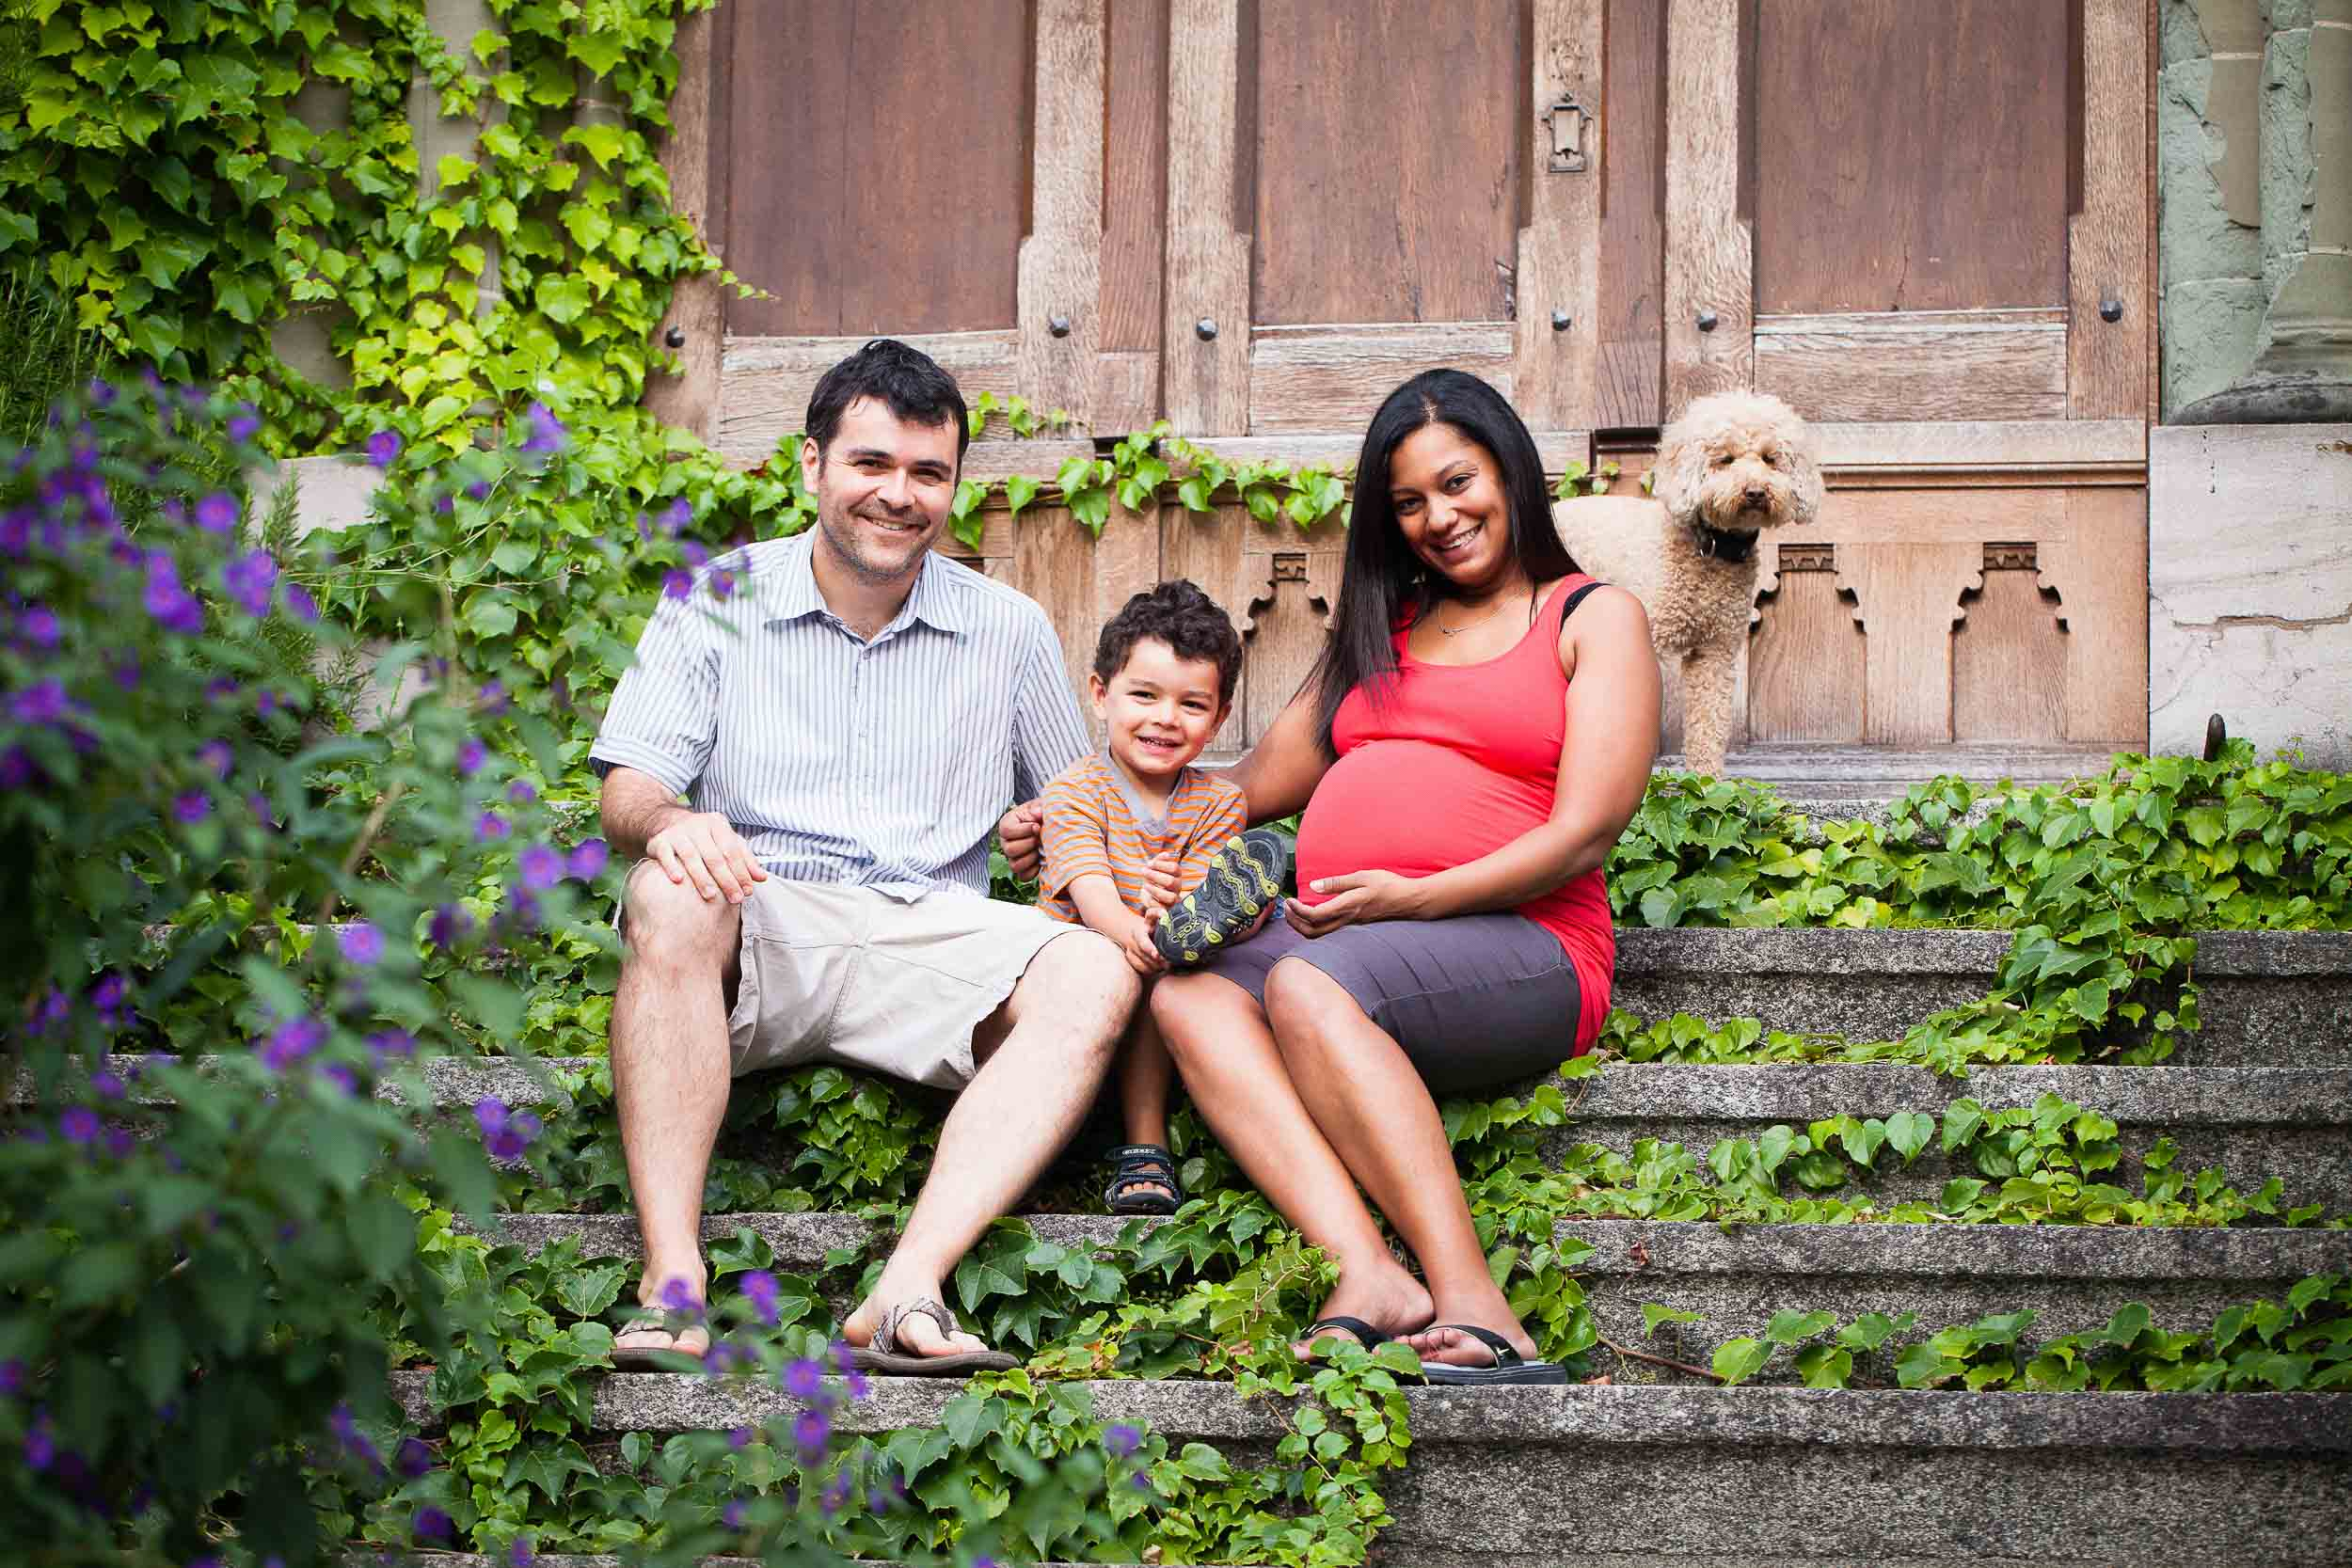 The whole family relaxes on the steps of Cully church for some natural maternity photos